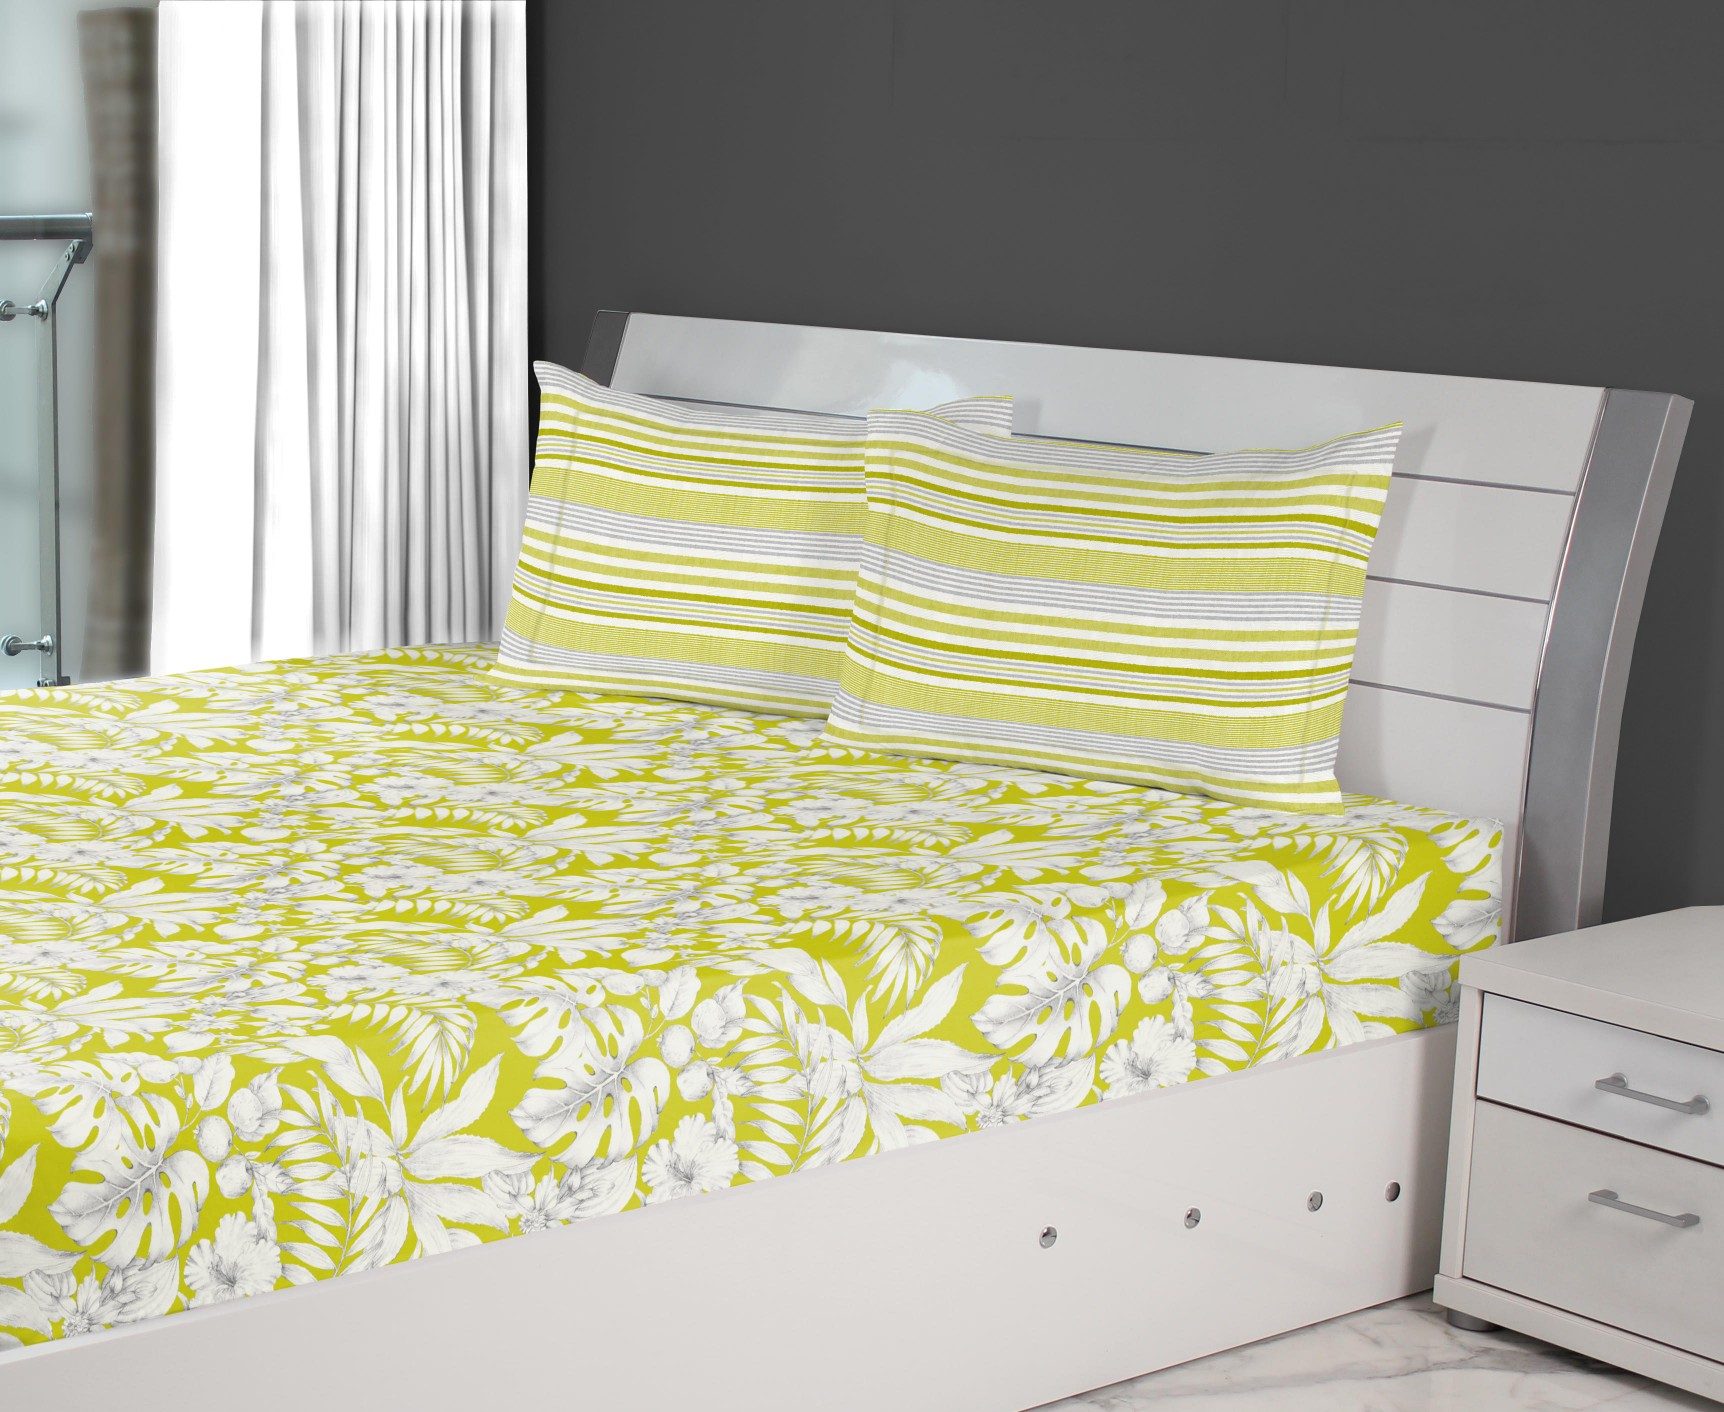 Emilia Cotton King Bedsheets in Lime Colour by Living Essence